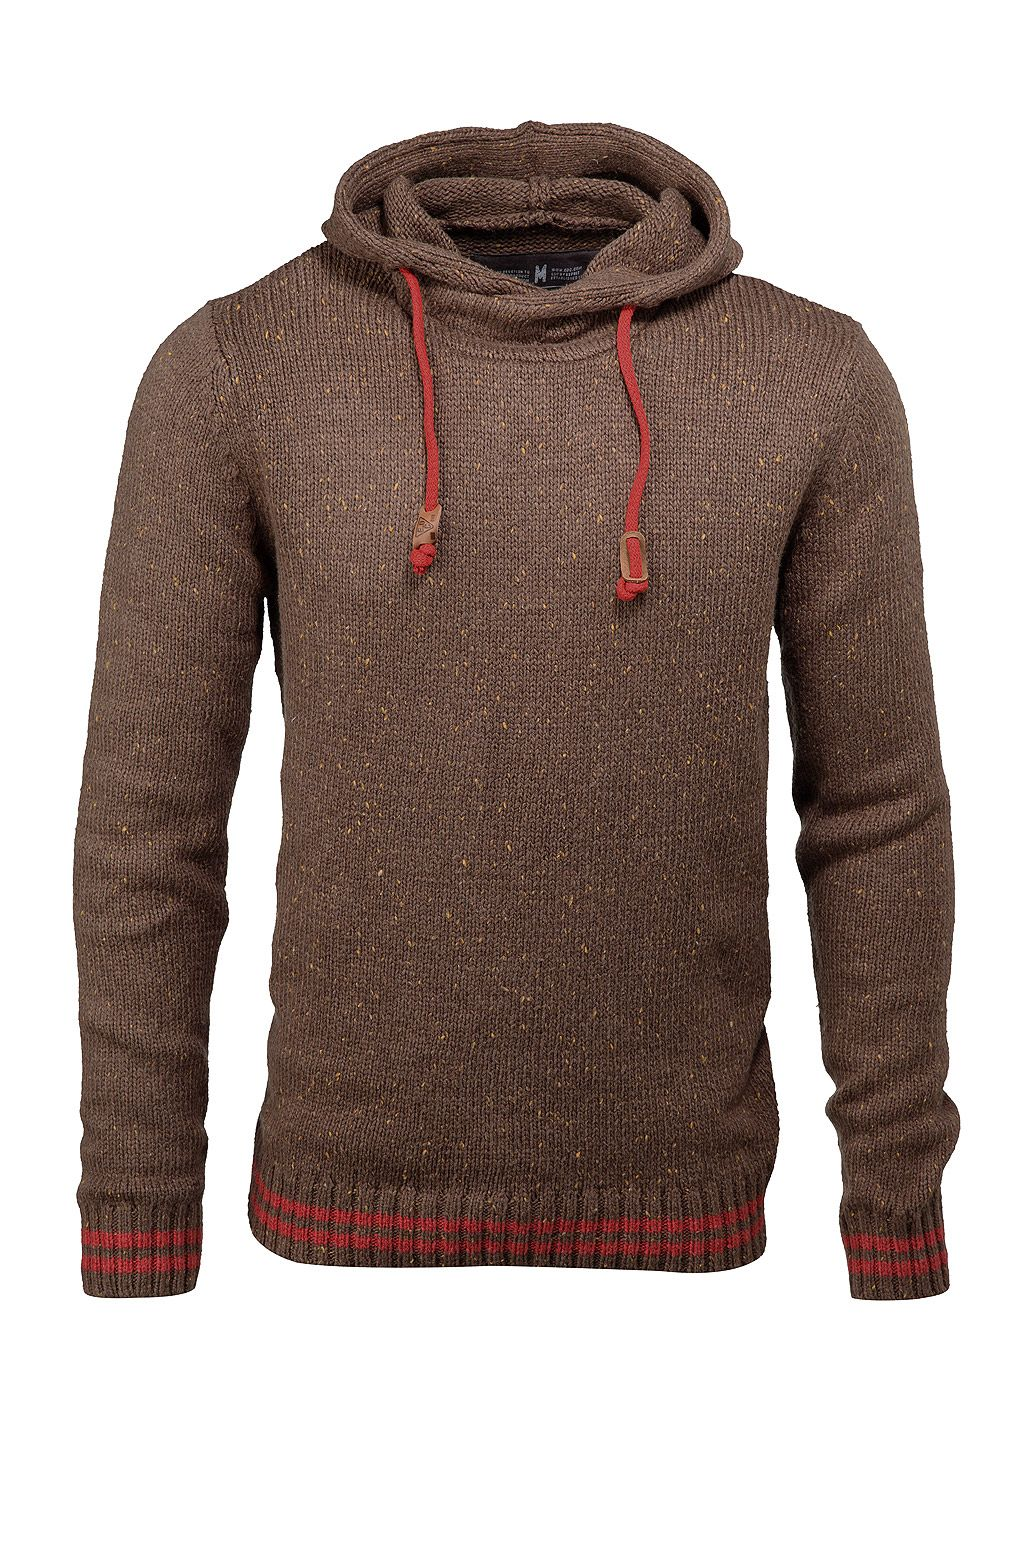 Esprit Online-Shop - Hoodie | How Men Should Dress | Pinterest ...